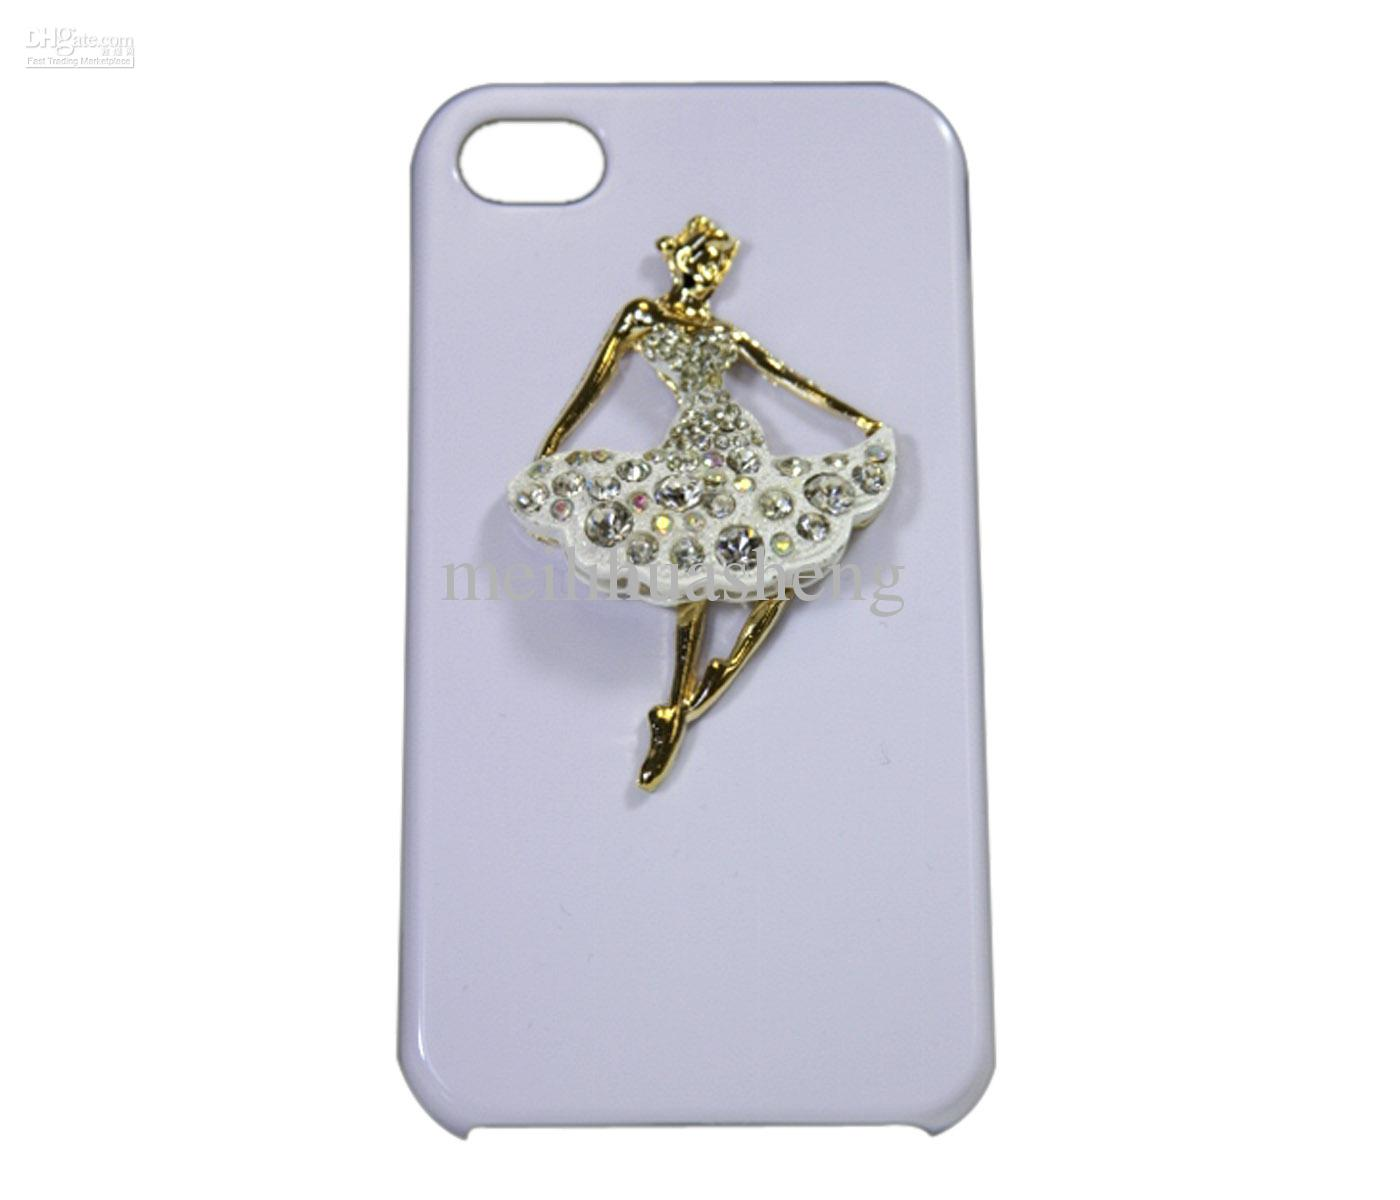 3d Movie Image: 3d Iphone 4 Cases For Girls